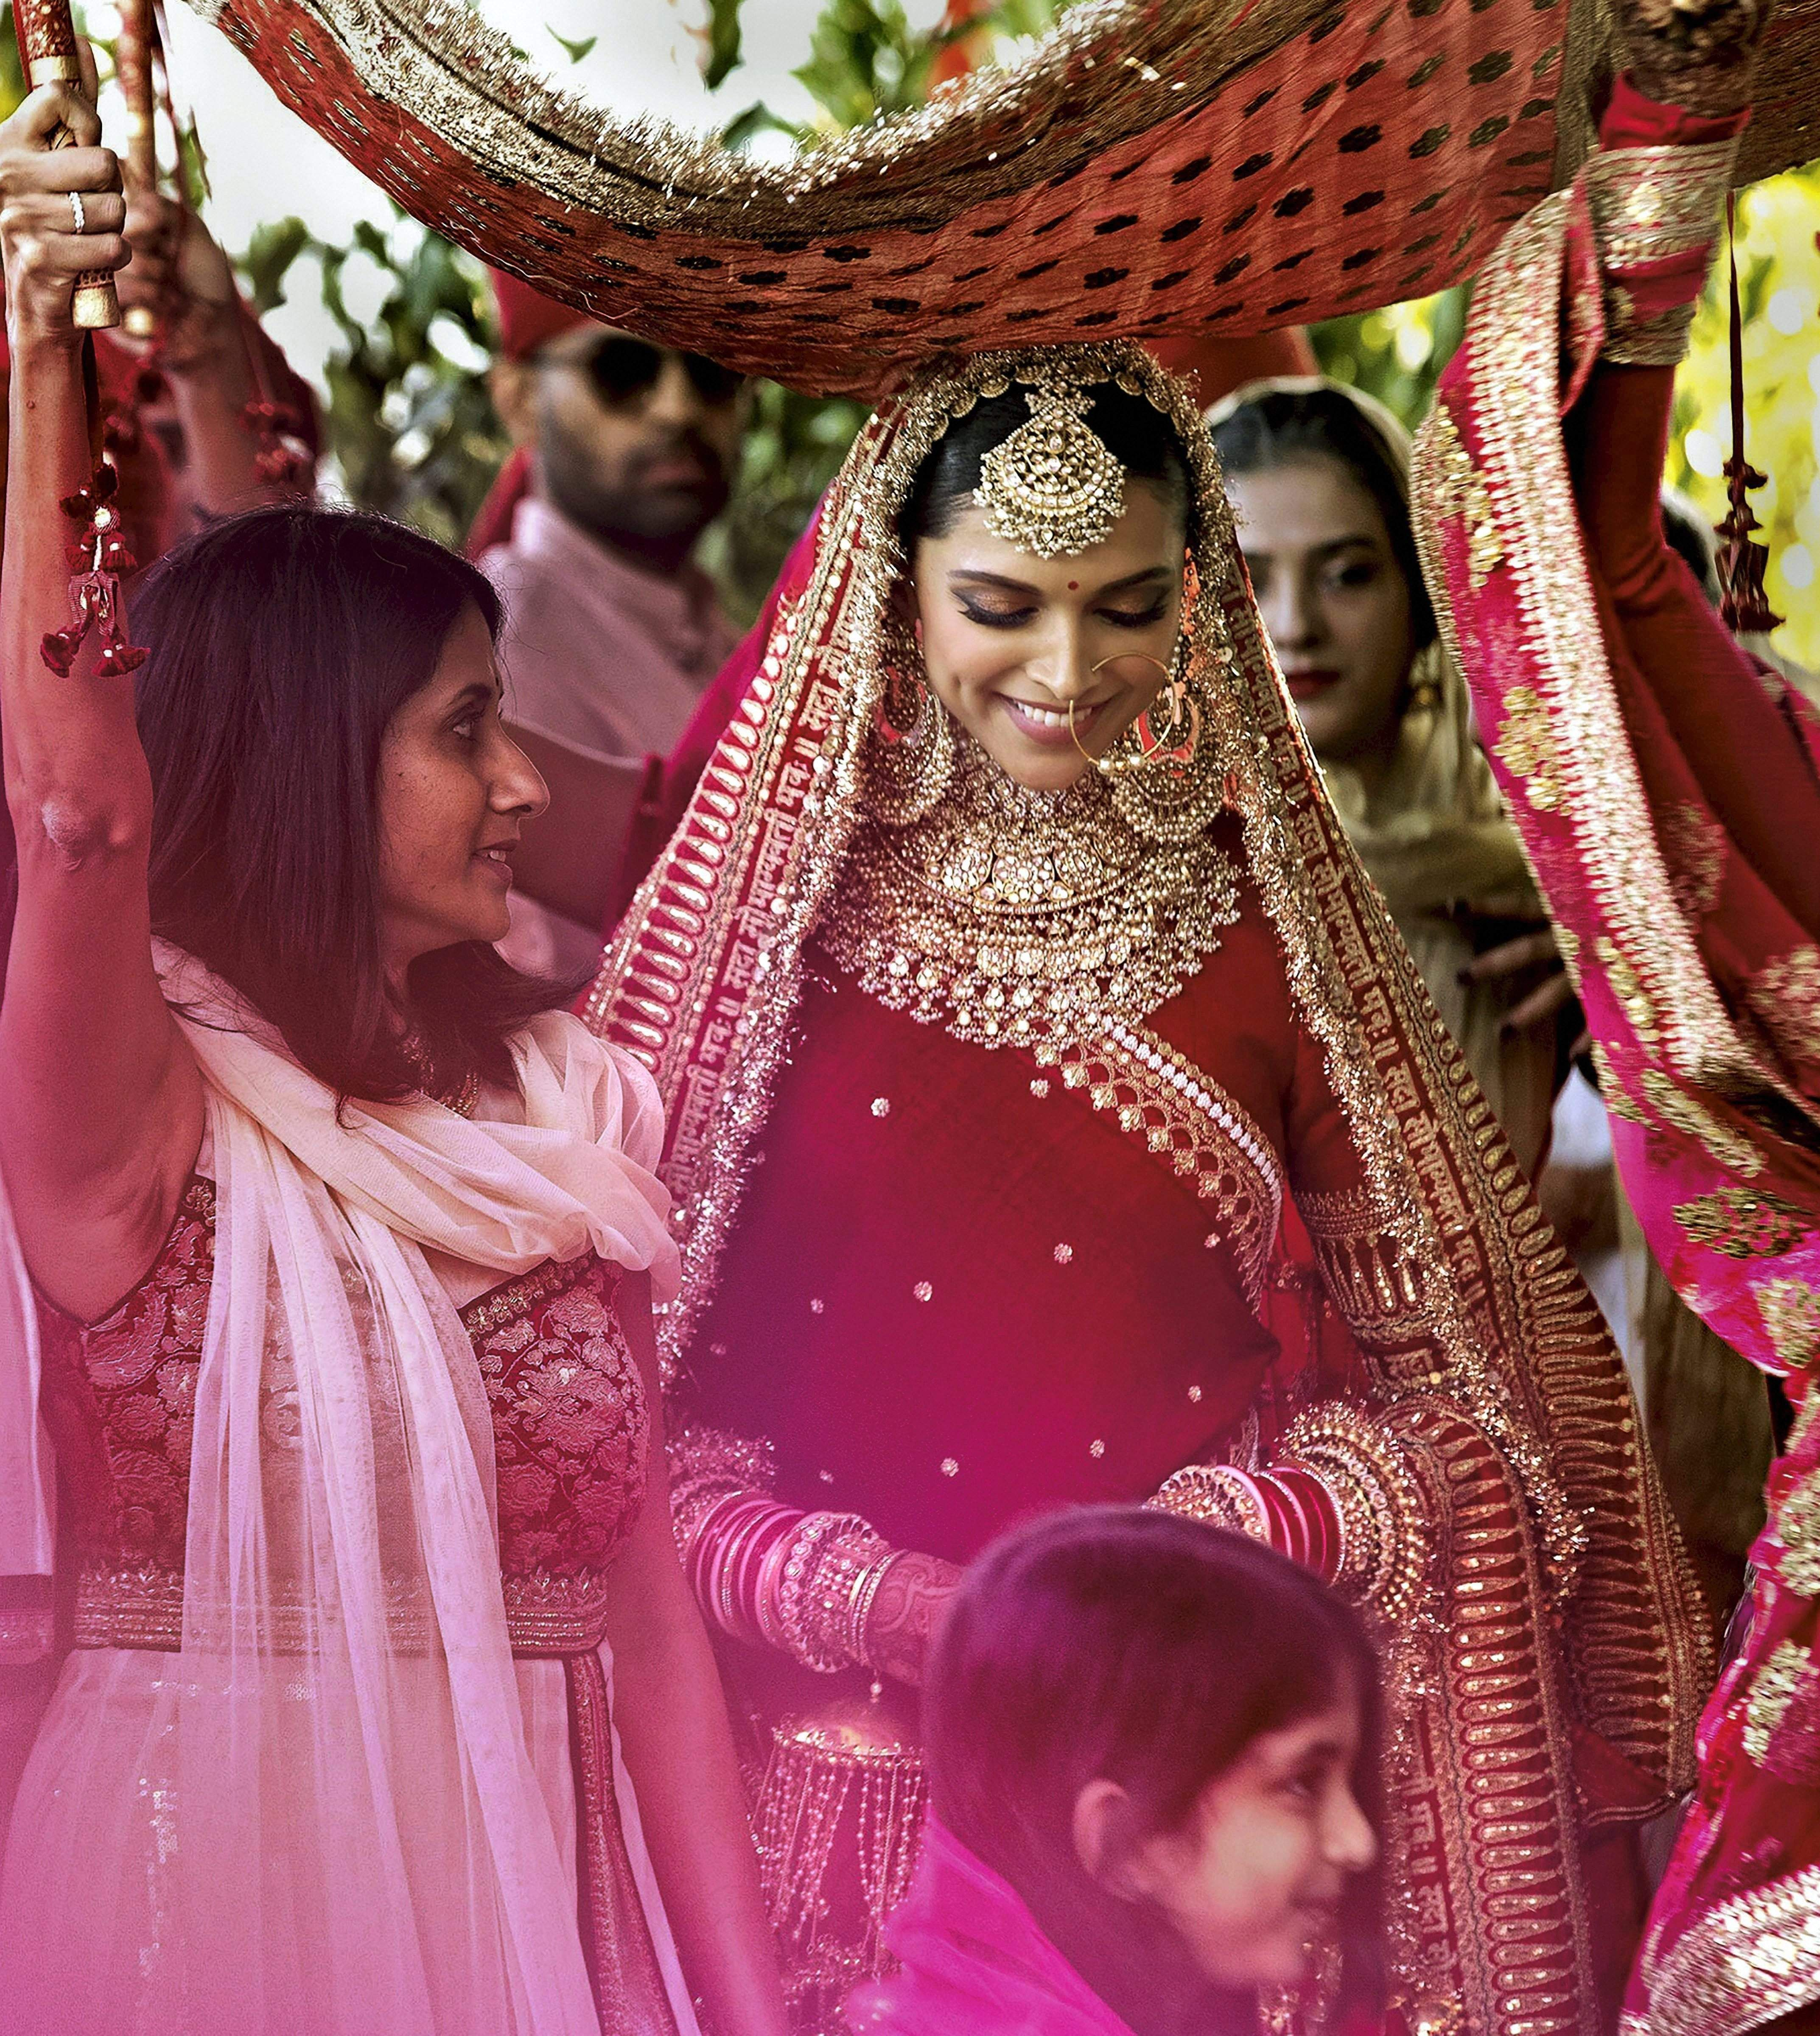 Bollywood Actor Deepika Padukone During Her Wedding Ceremony At Lake Como In Northern Italy Indian Bride Outfits Bollywood Wedding Wedding Dresses For Girls